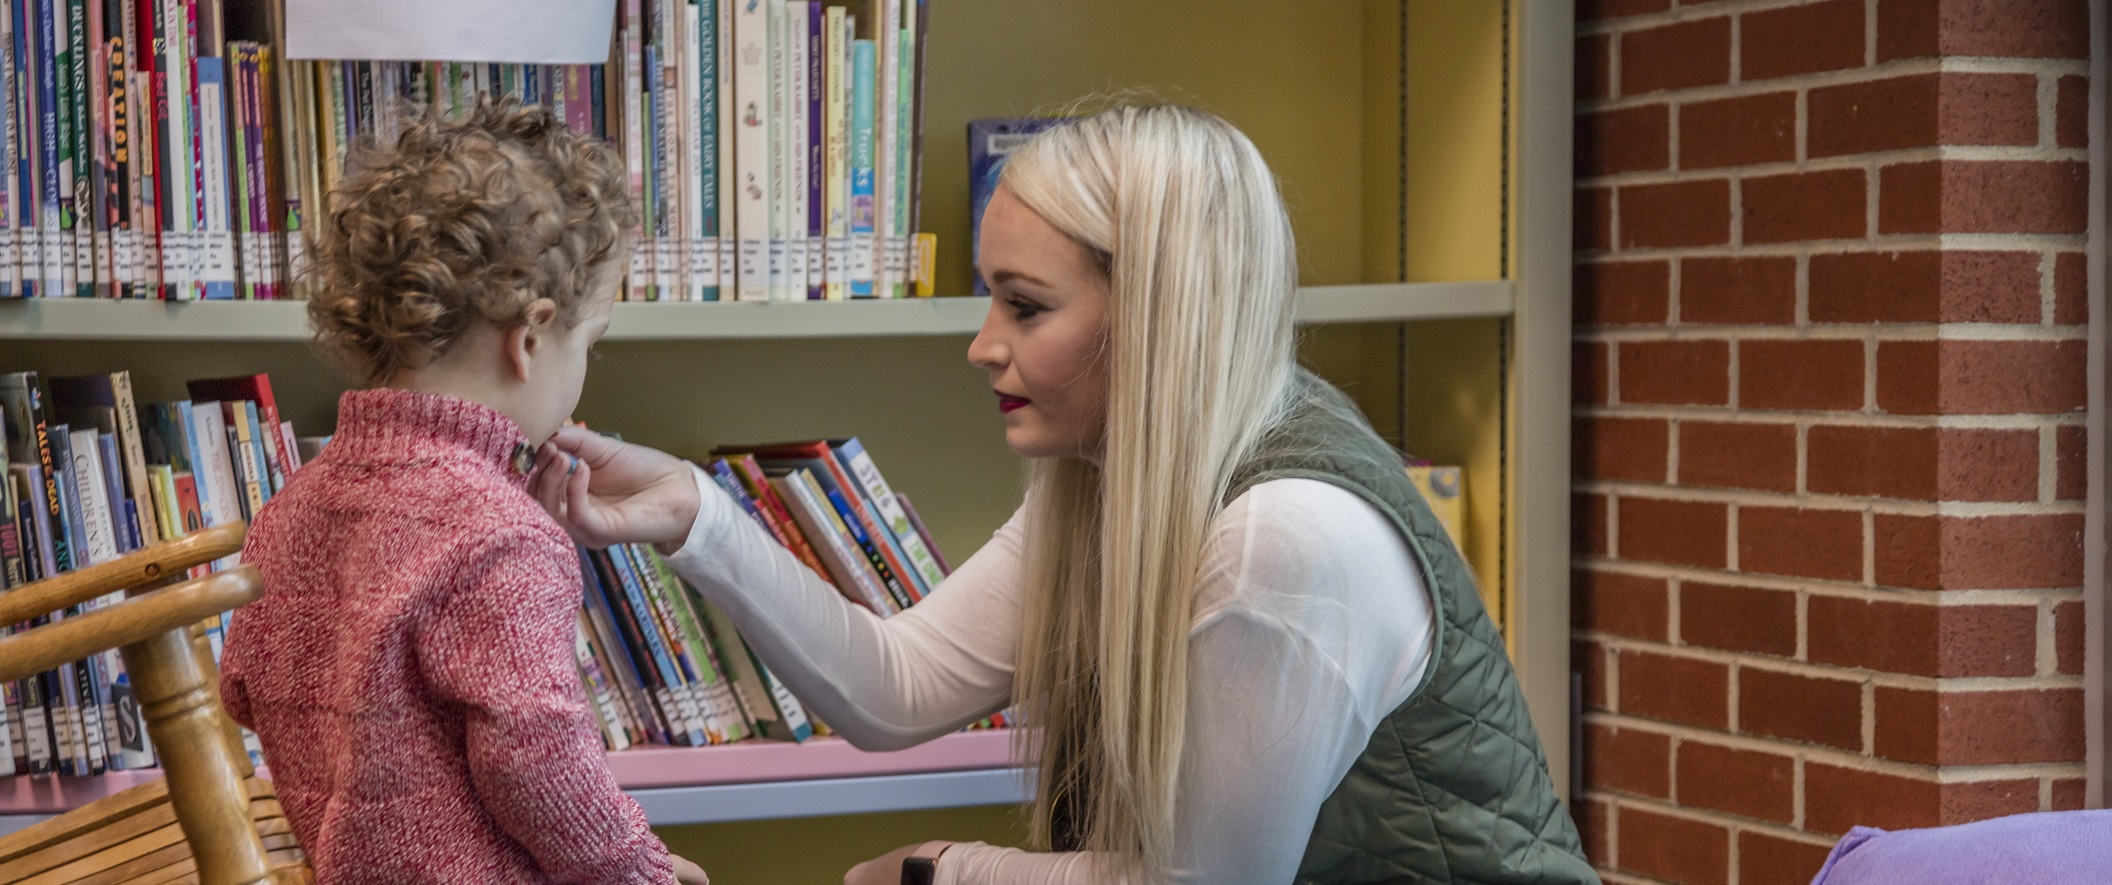 A mother interacting with her daughter in a library